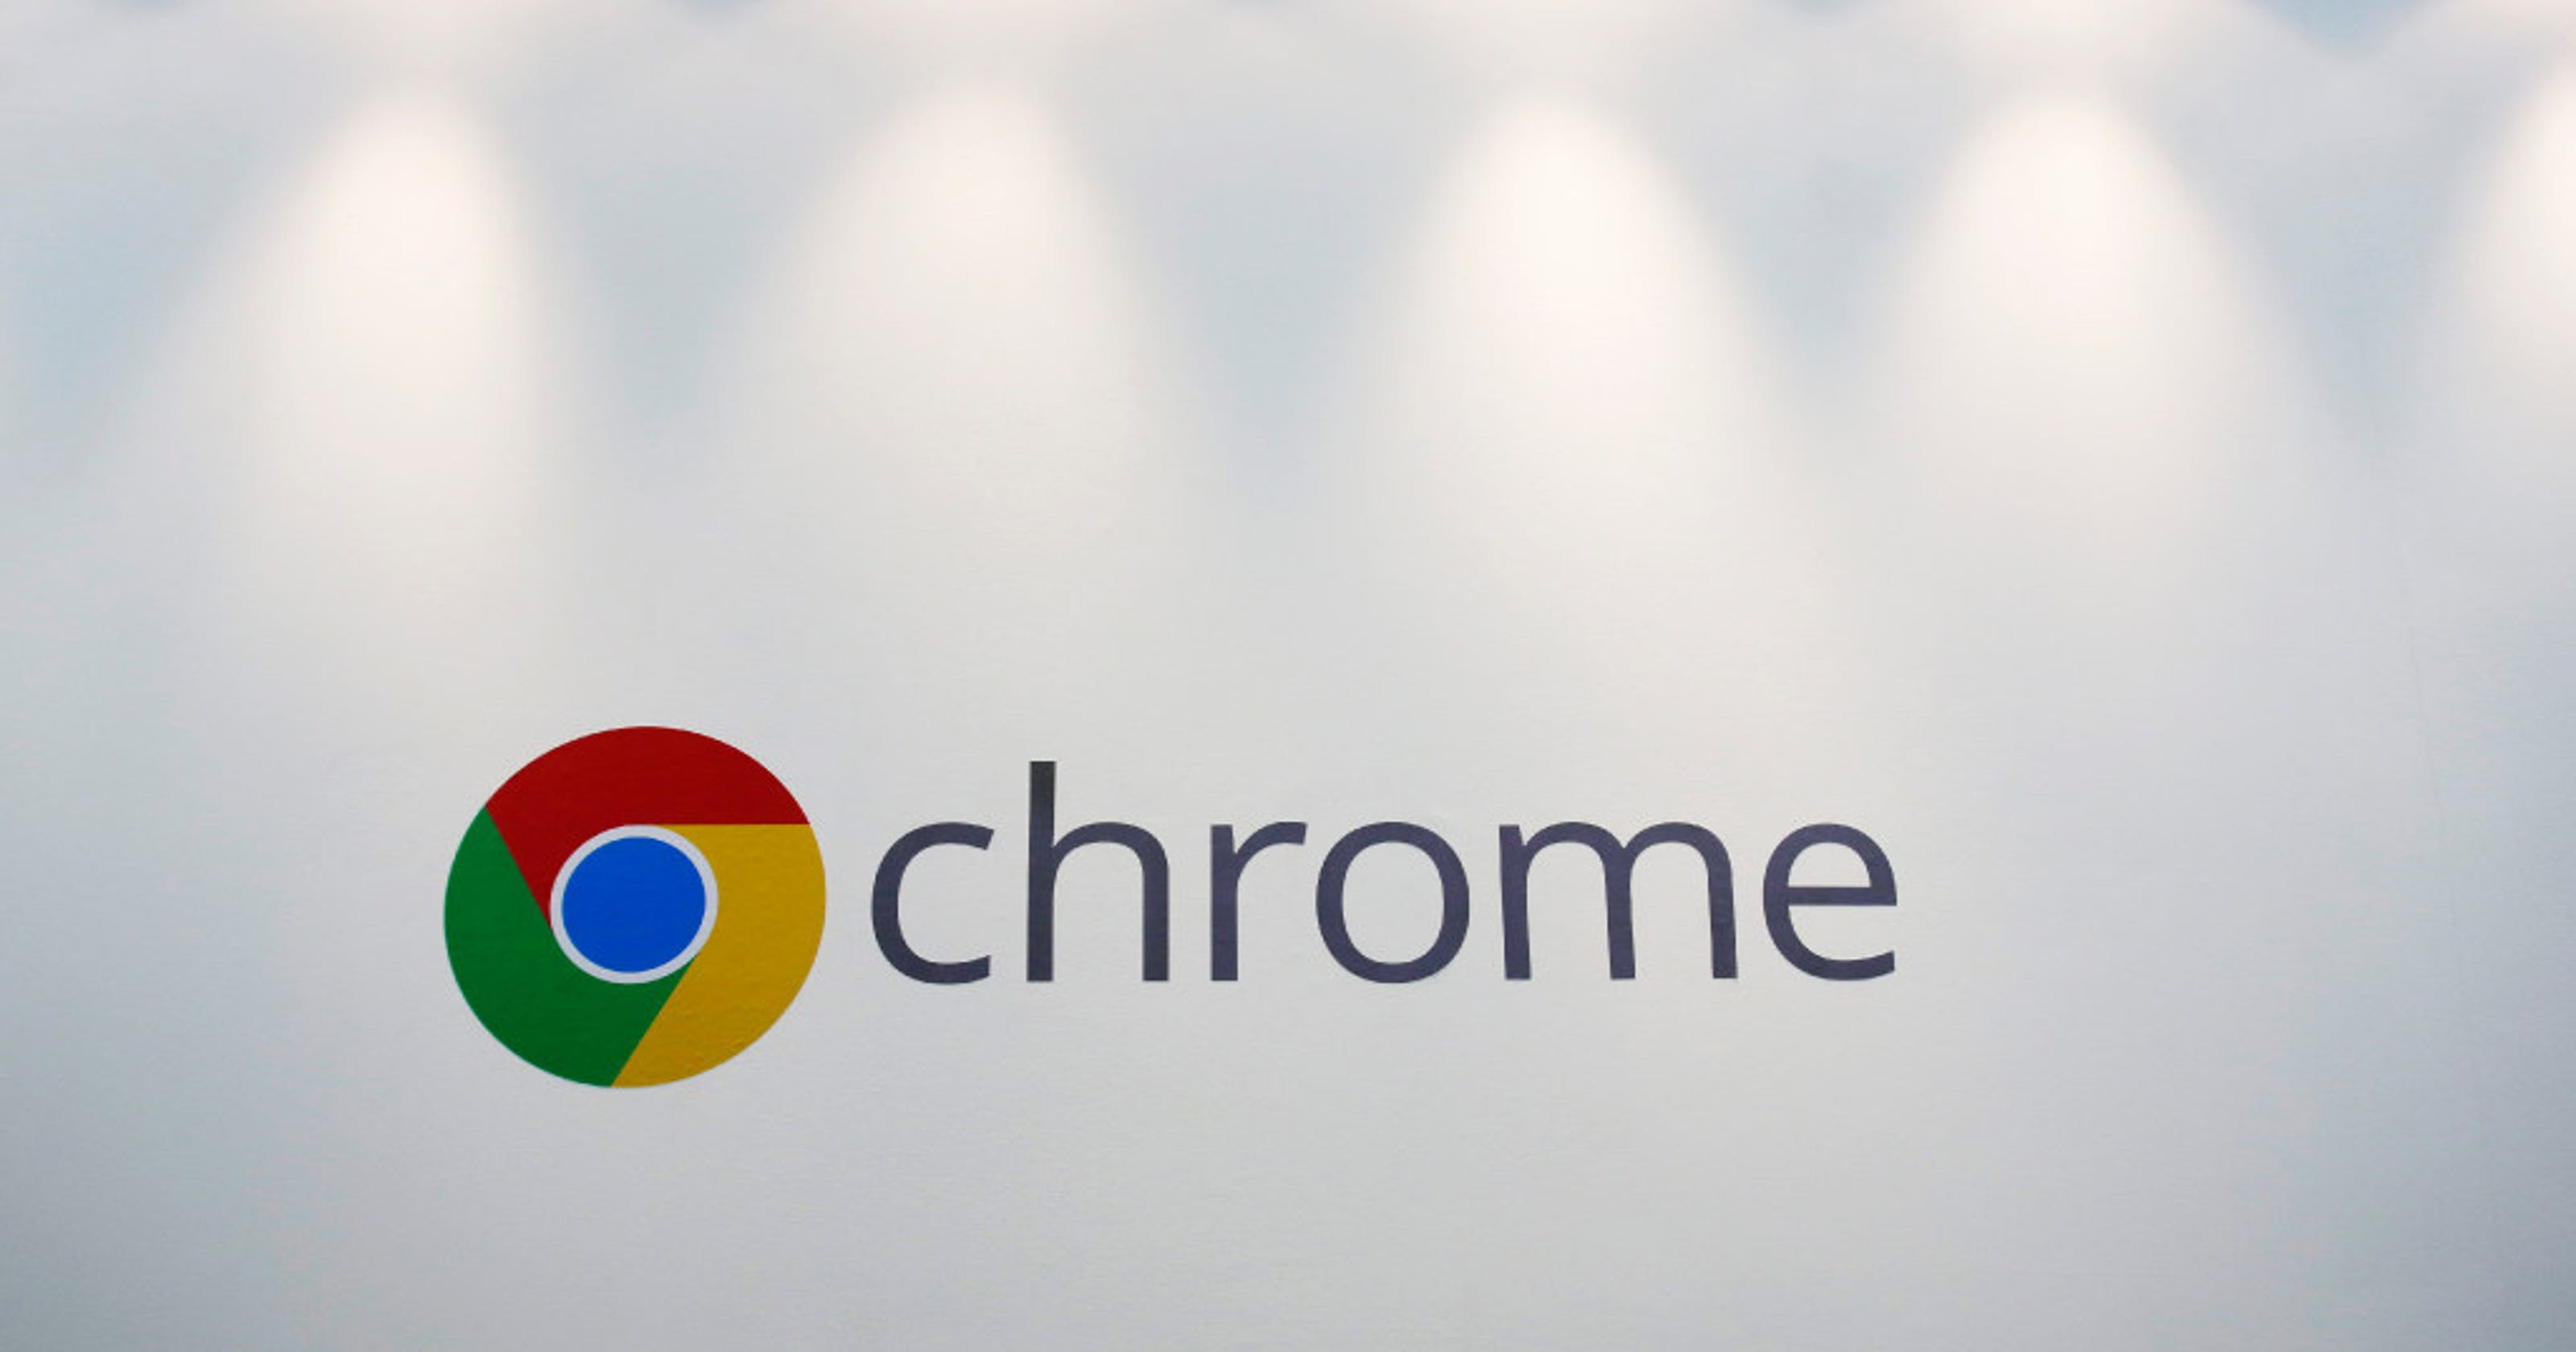 Google's Chrome browser to block some ads starting next year